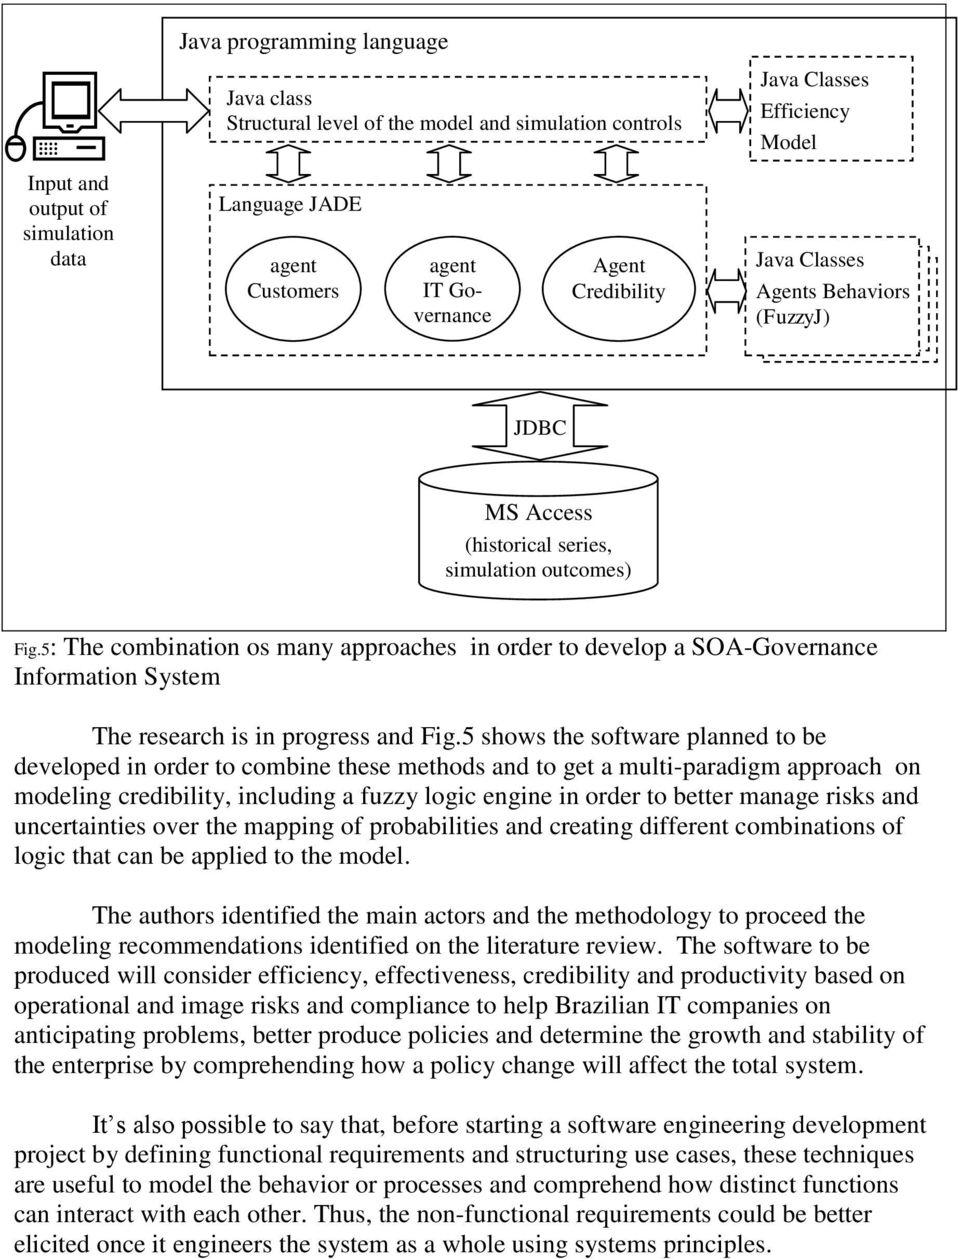 SOAGovernance Information System The research is in progress and Fig5 shows the software planned to be developed in order to combine these methods and to get a multiparadigm approach on modeling